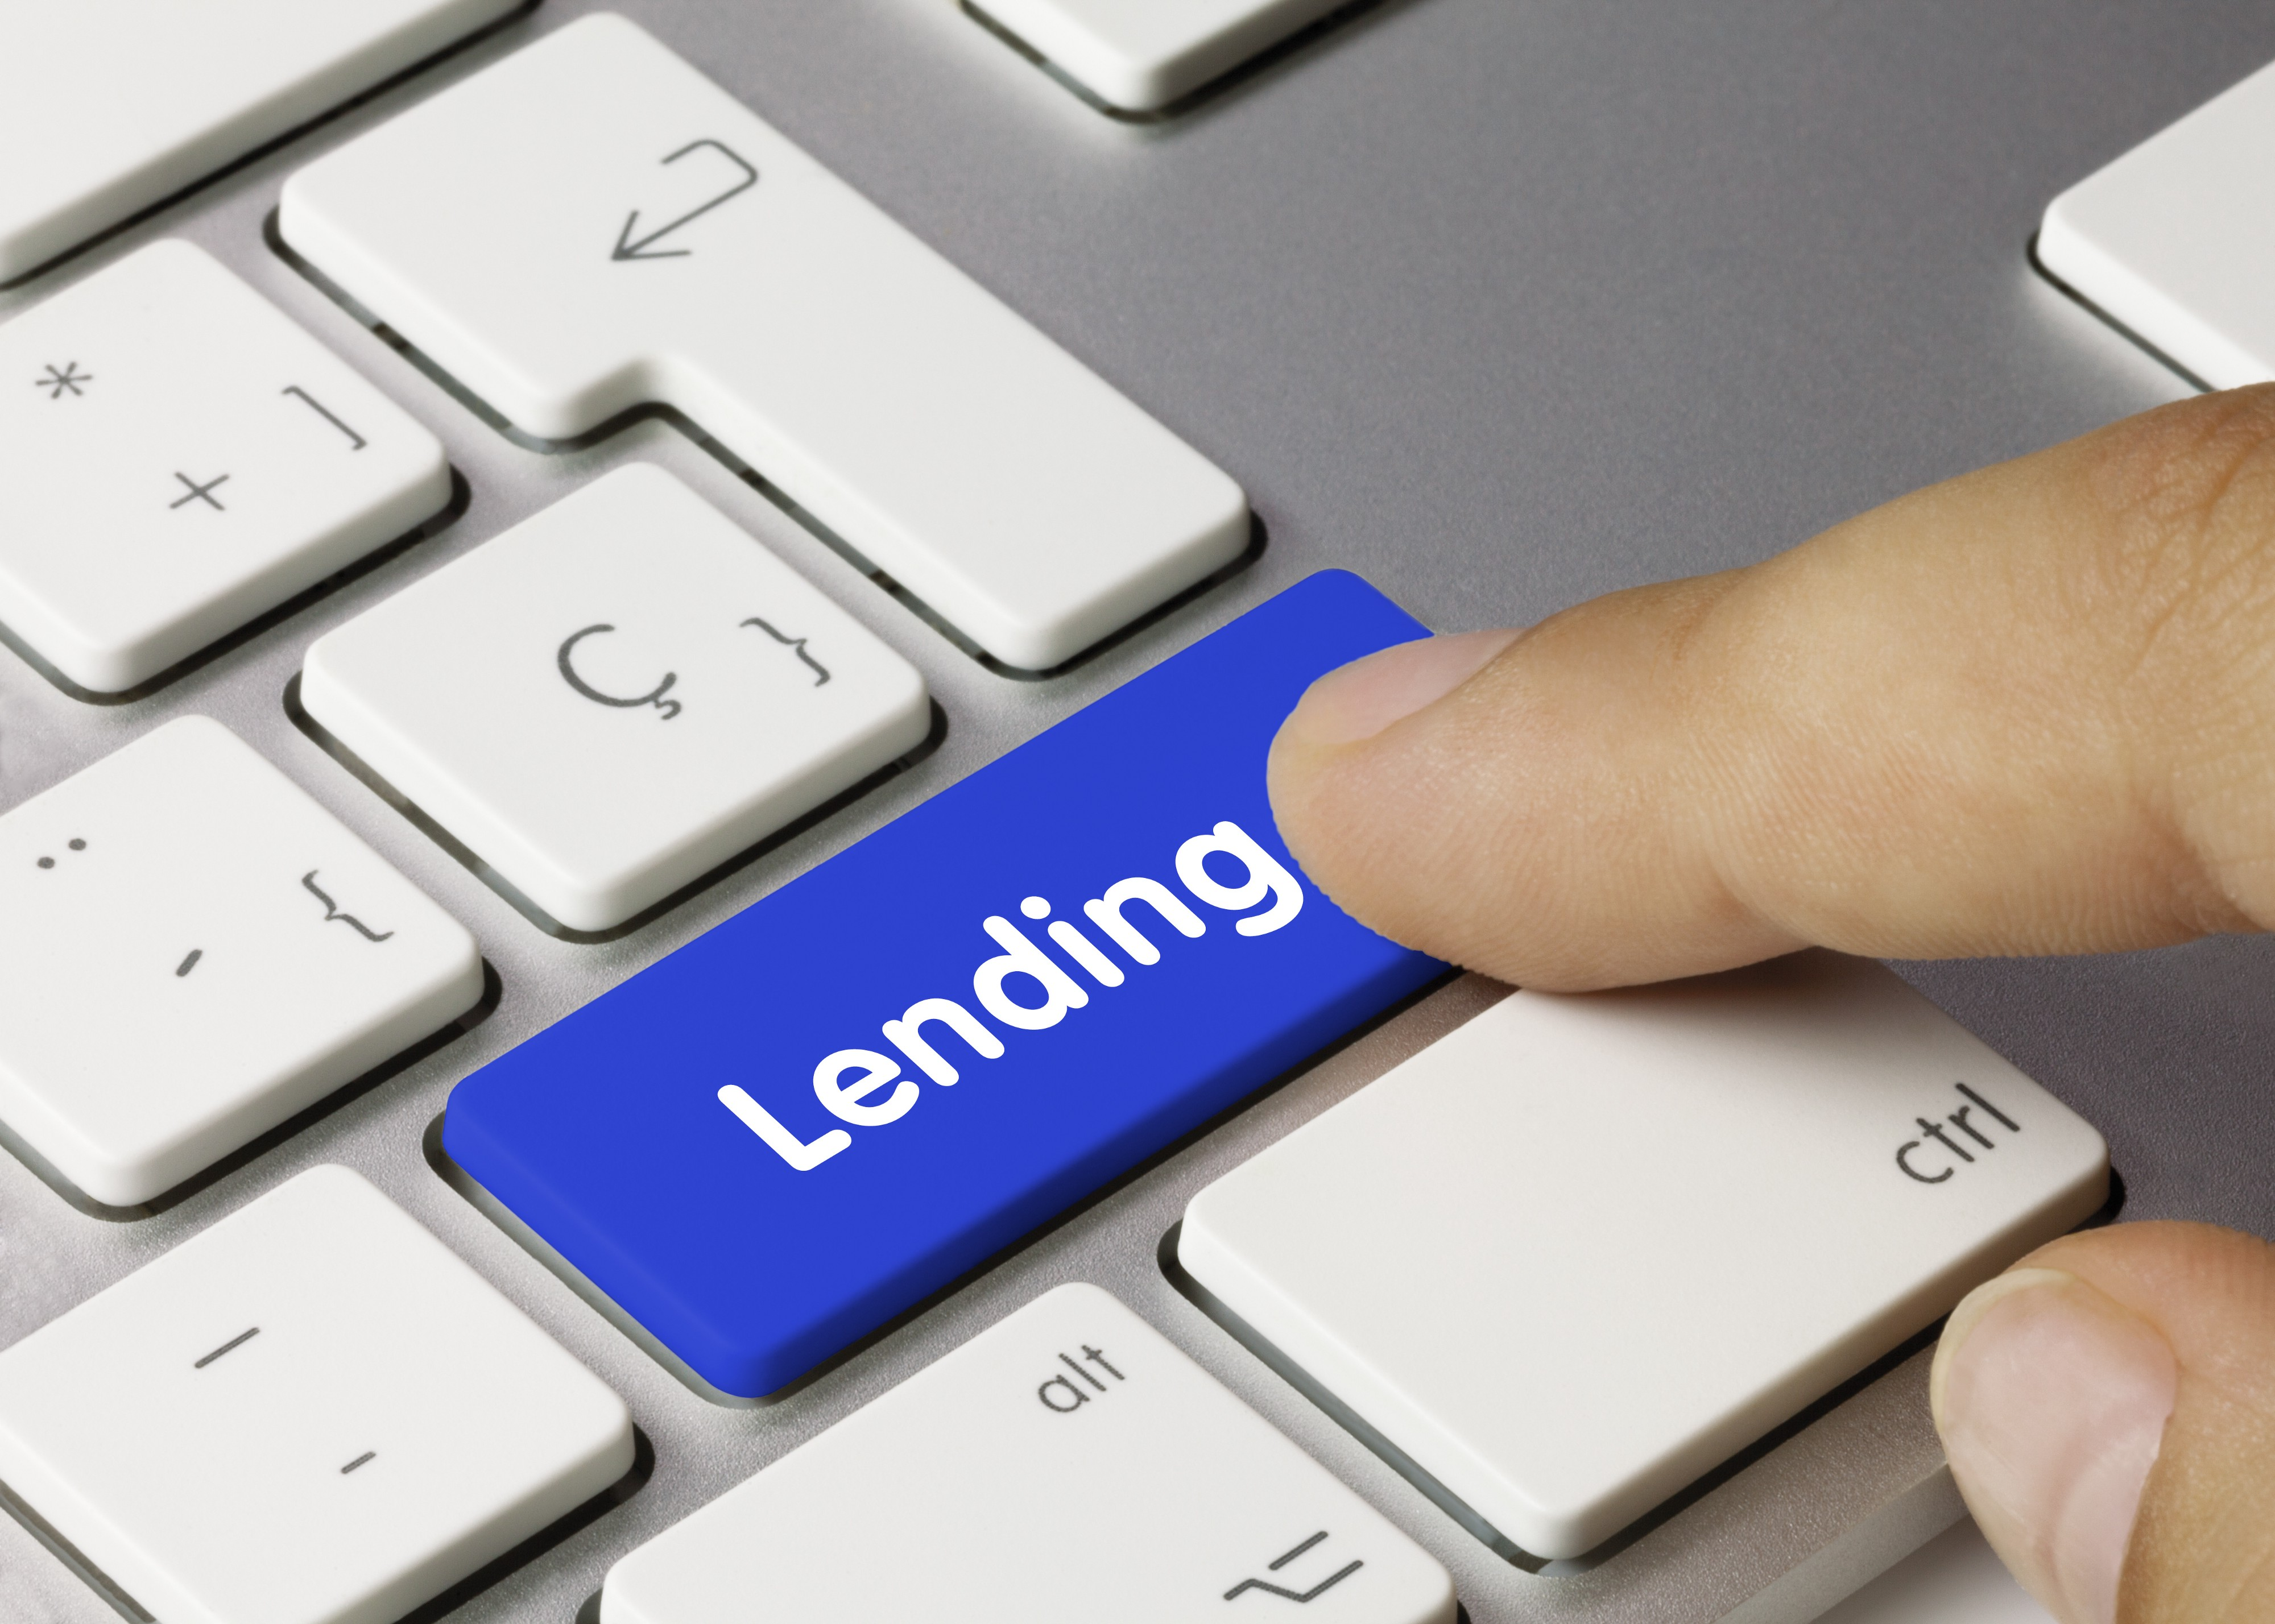 Bitfinex Launches a New P2P Automated Crypto Lending Service